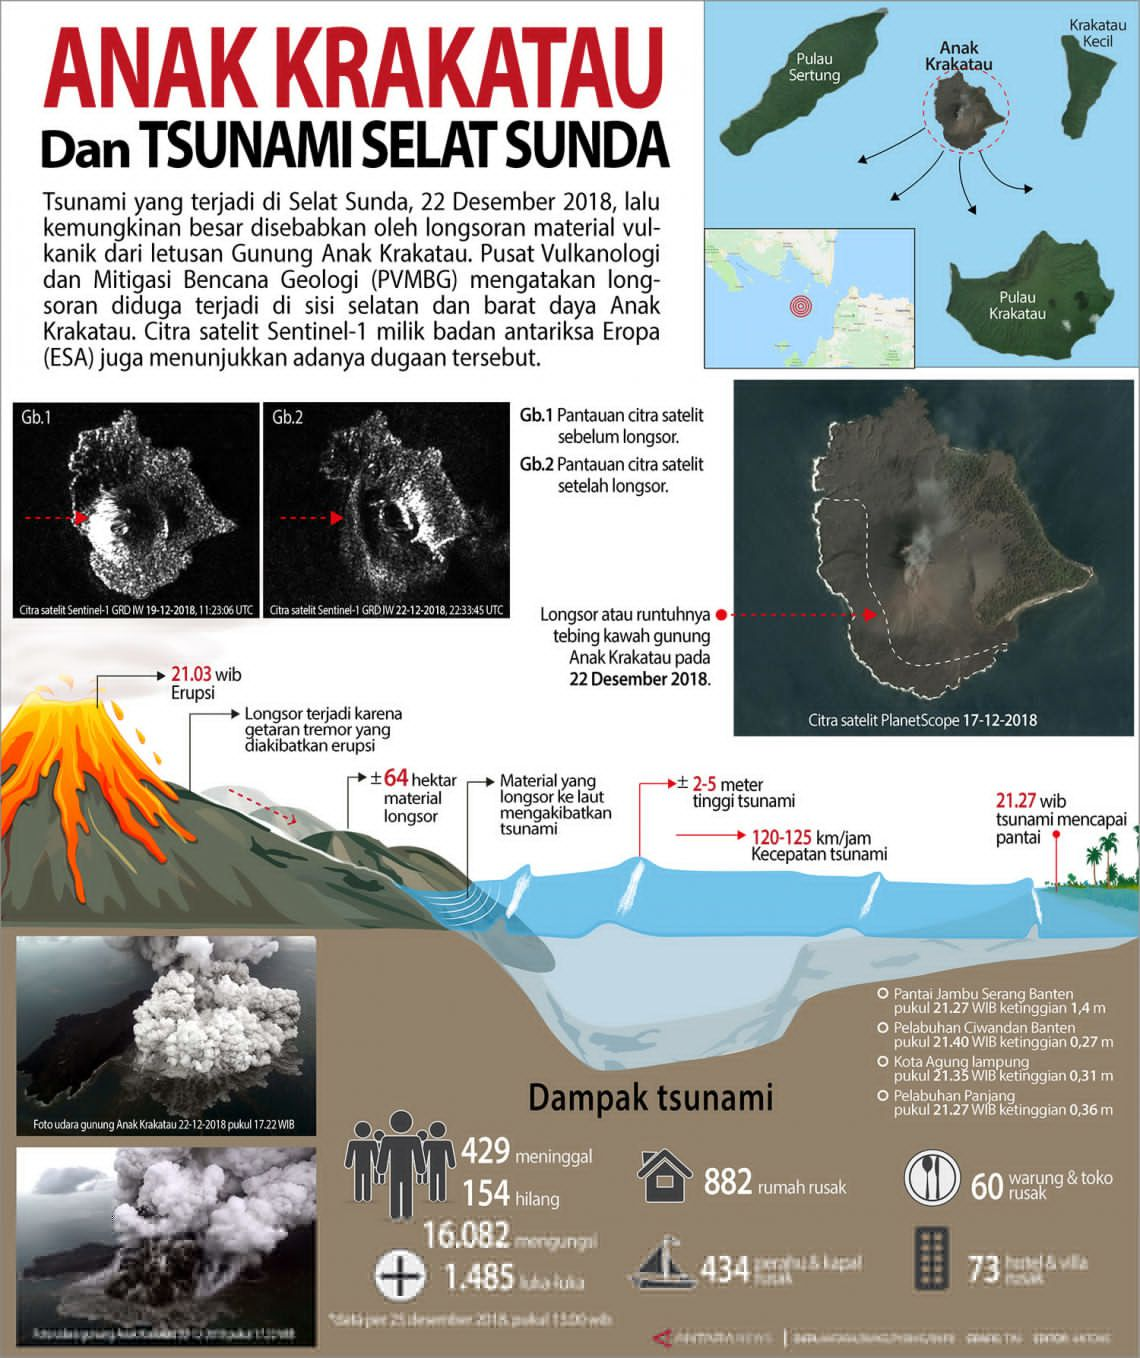 Anak Krakatau - synoptic table summarizing the mechanisms lead to the disaster, and counting the number of victims of the tsunami - via Antara